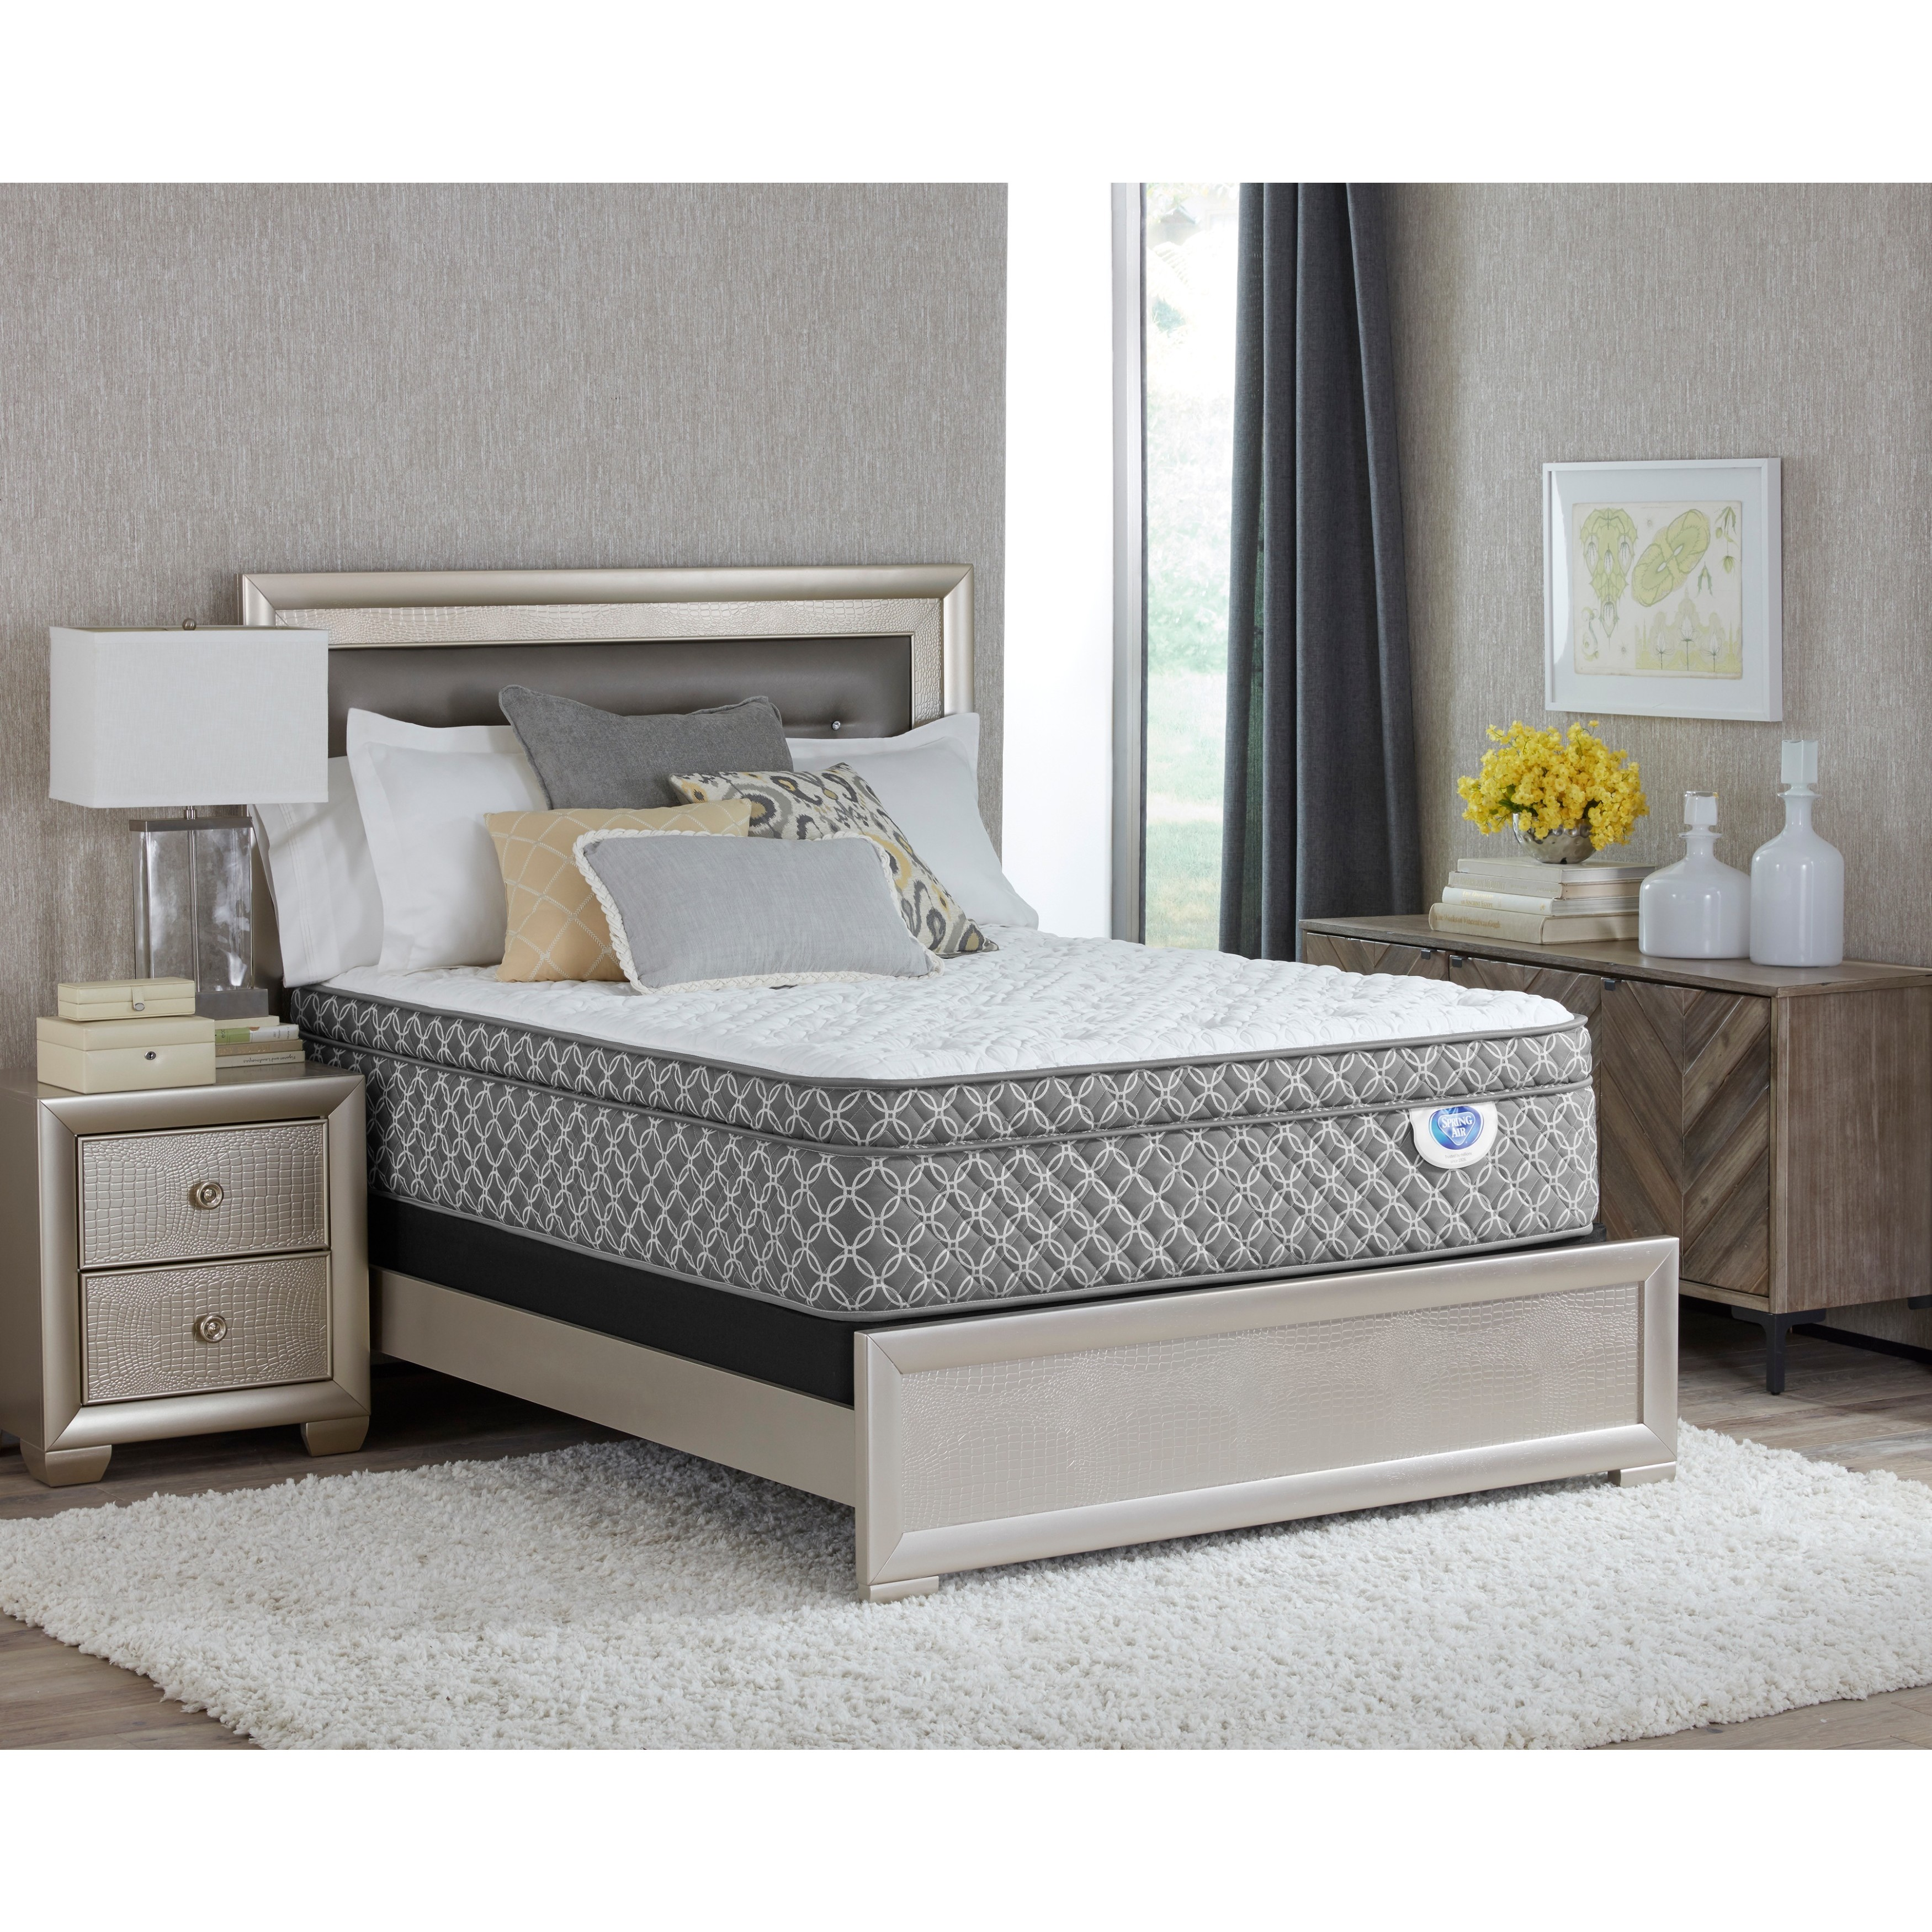 Spring Air Shelby Euro Top King-size Mattress Set (Mattre...